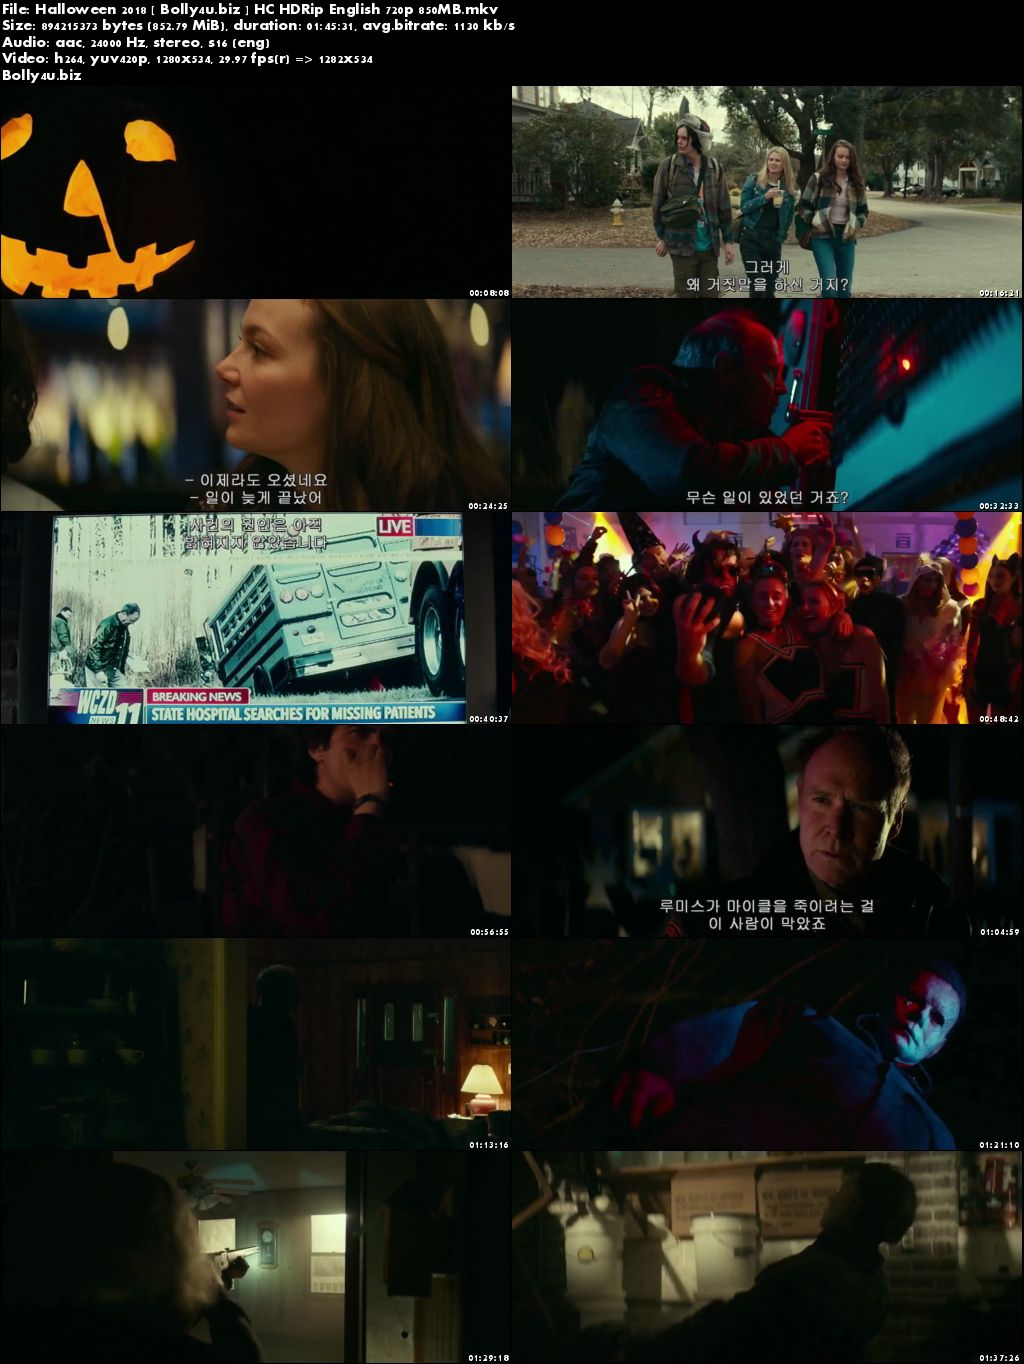 Halloween 2018 HC HDRip 850Mb English 720p Download